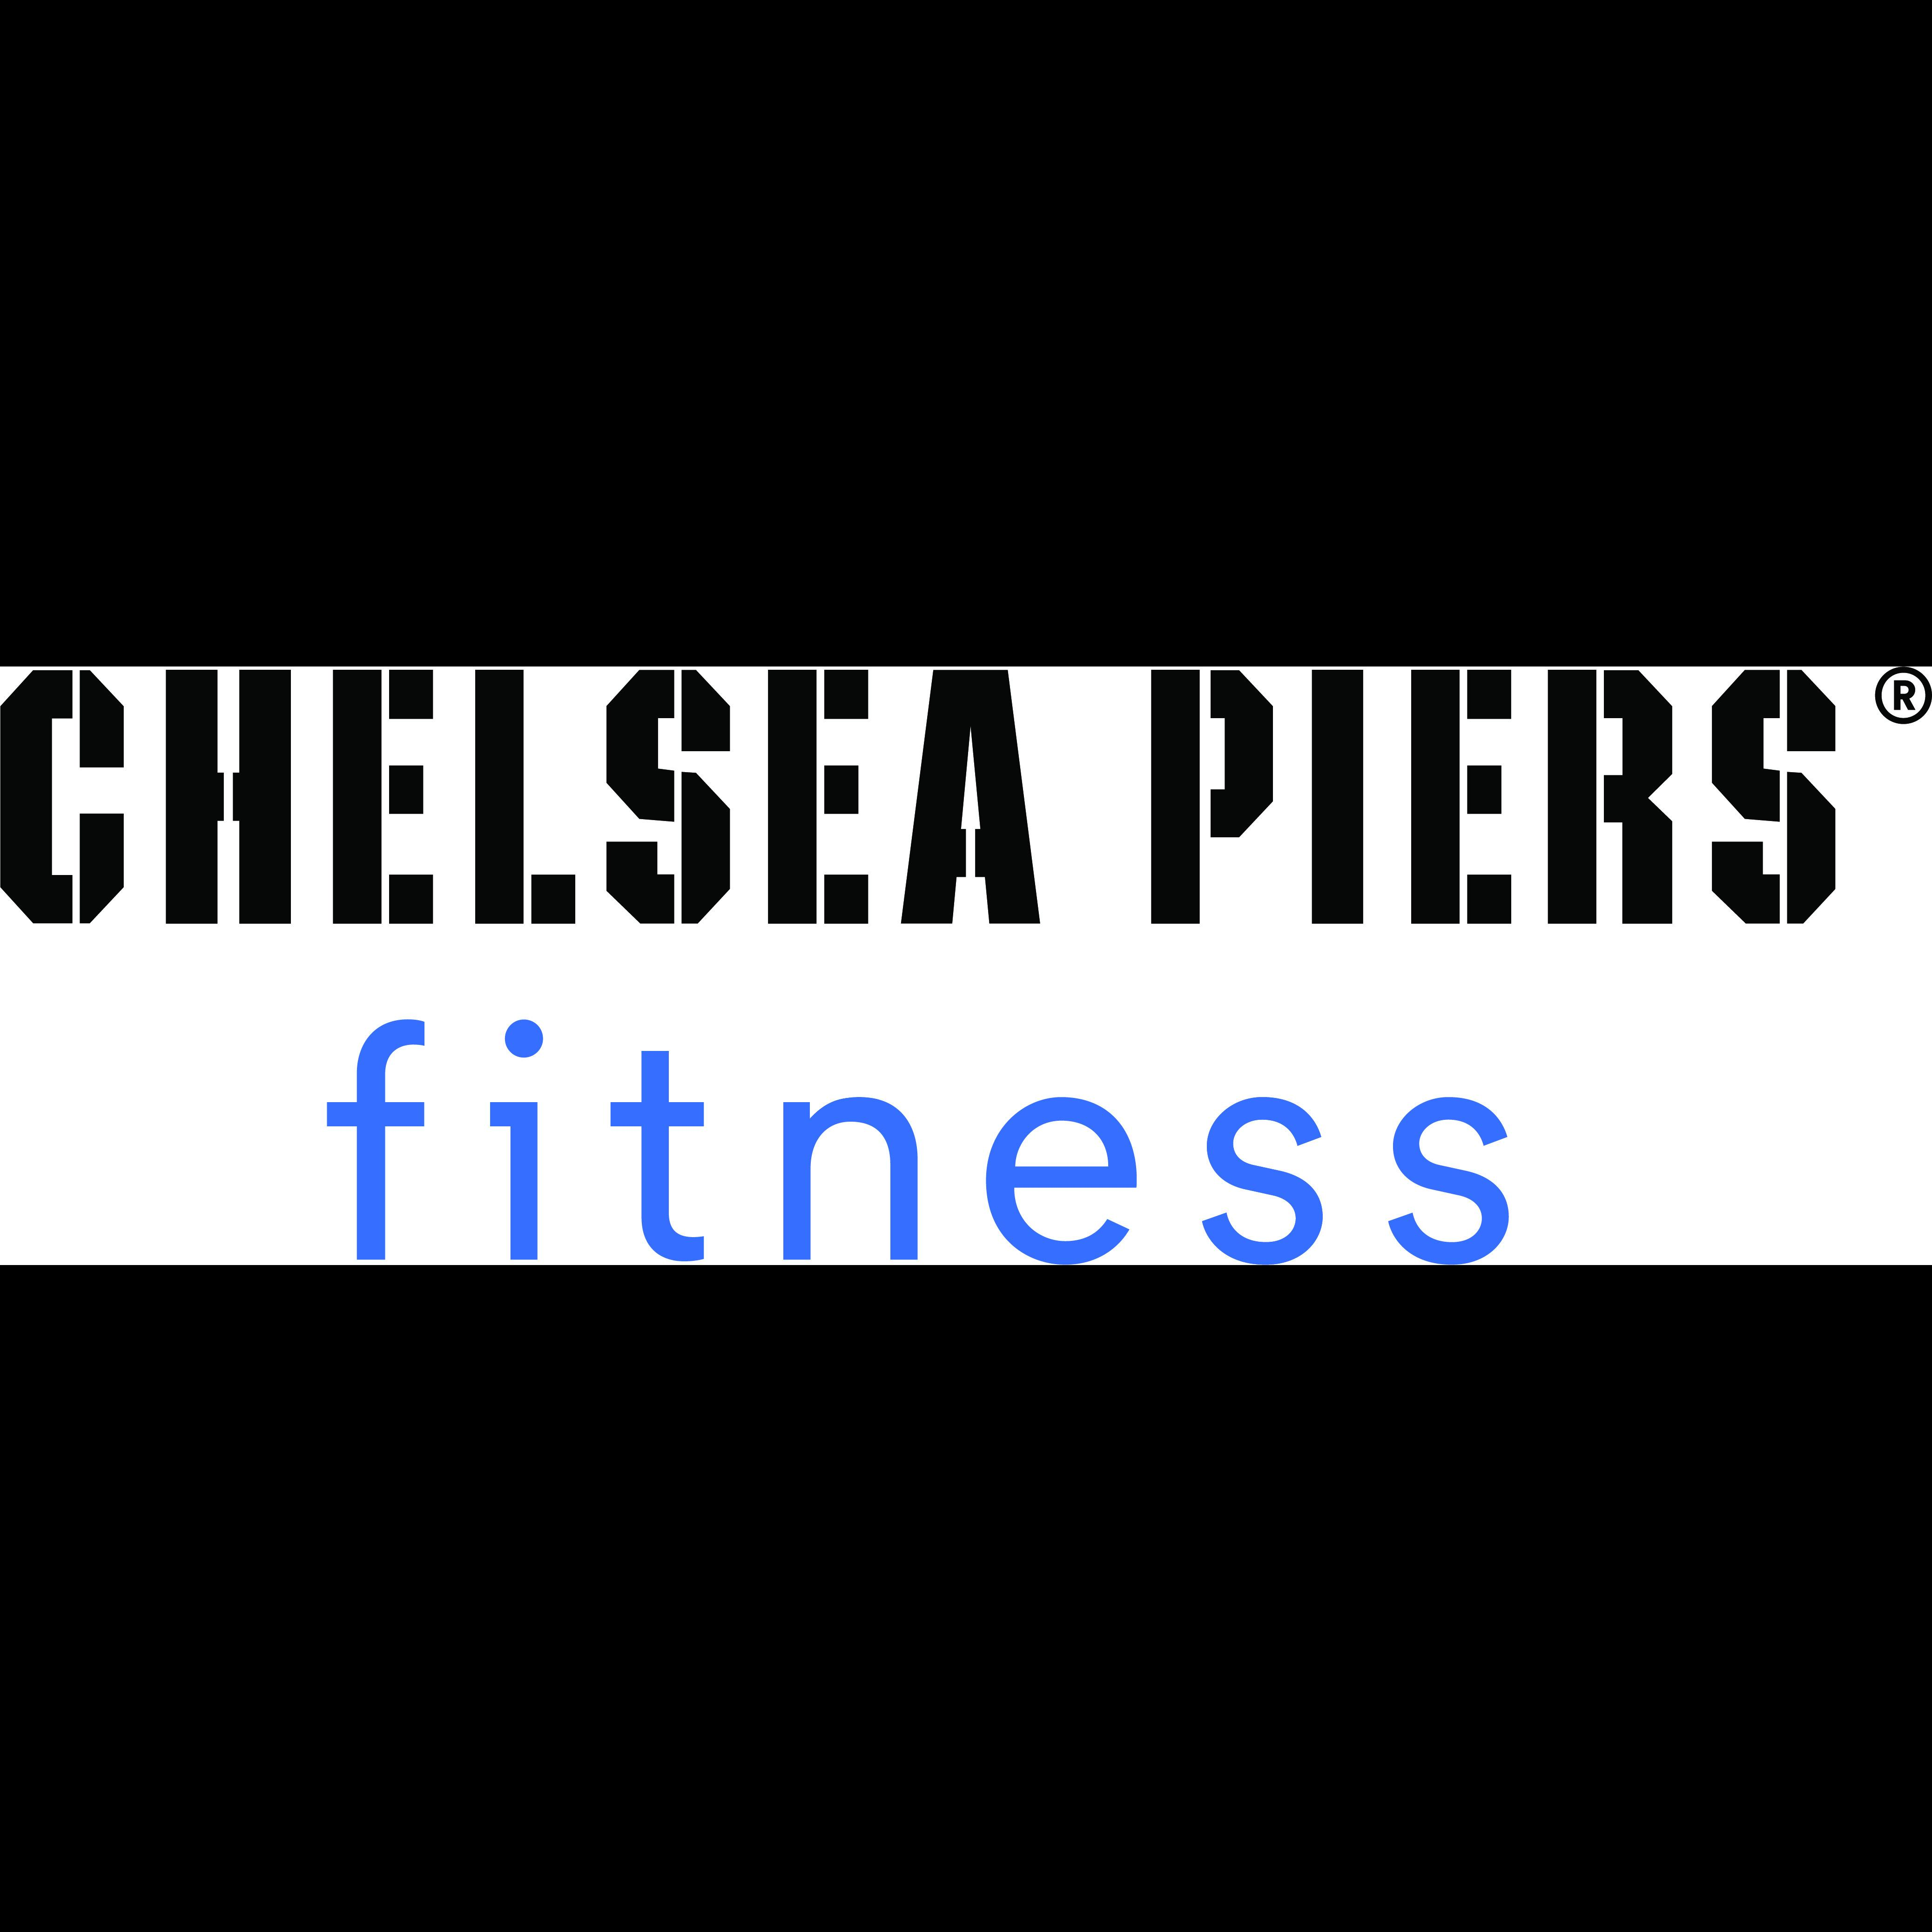 Chelsea Piers Fitness in New York, NY, photo #1